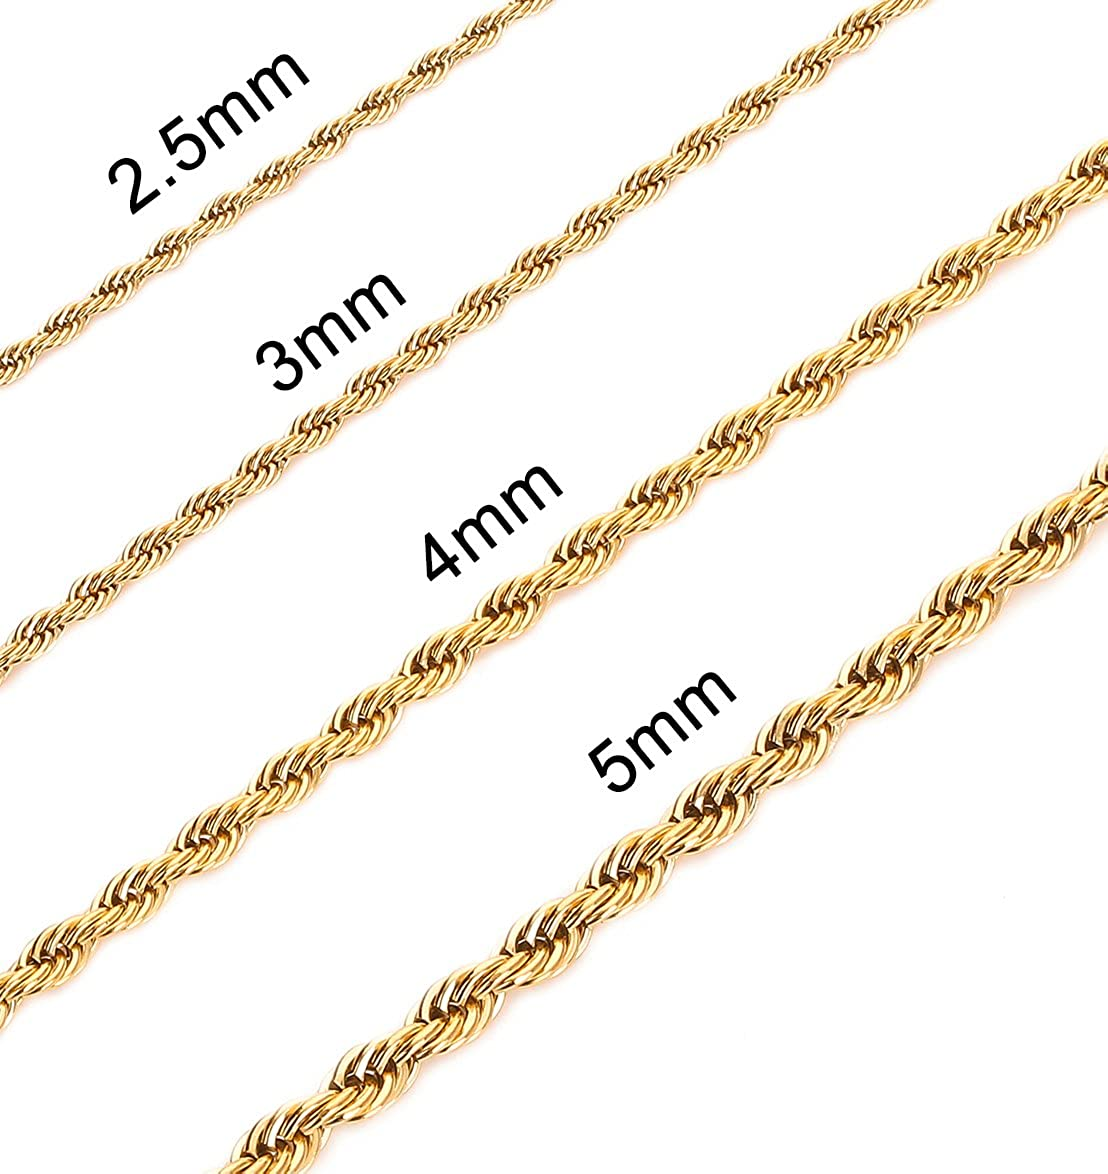 18k Real Gold Plated Rope Chain 2.5-5MM Stainless Steel Mens Chain Necklace Women Chains 16-36 Inches Monily JN01071GD021602